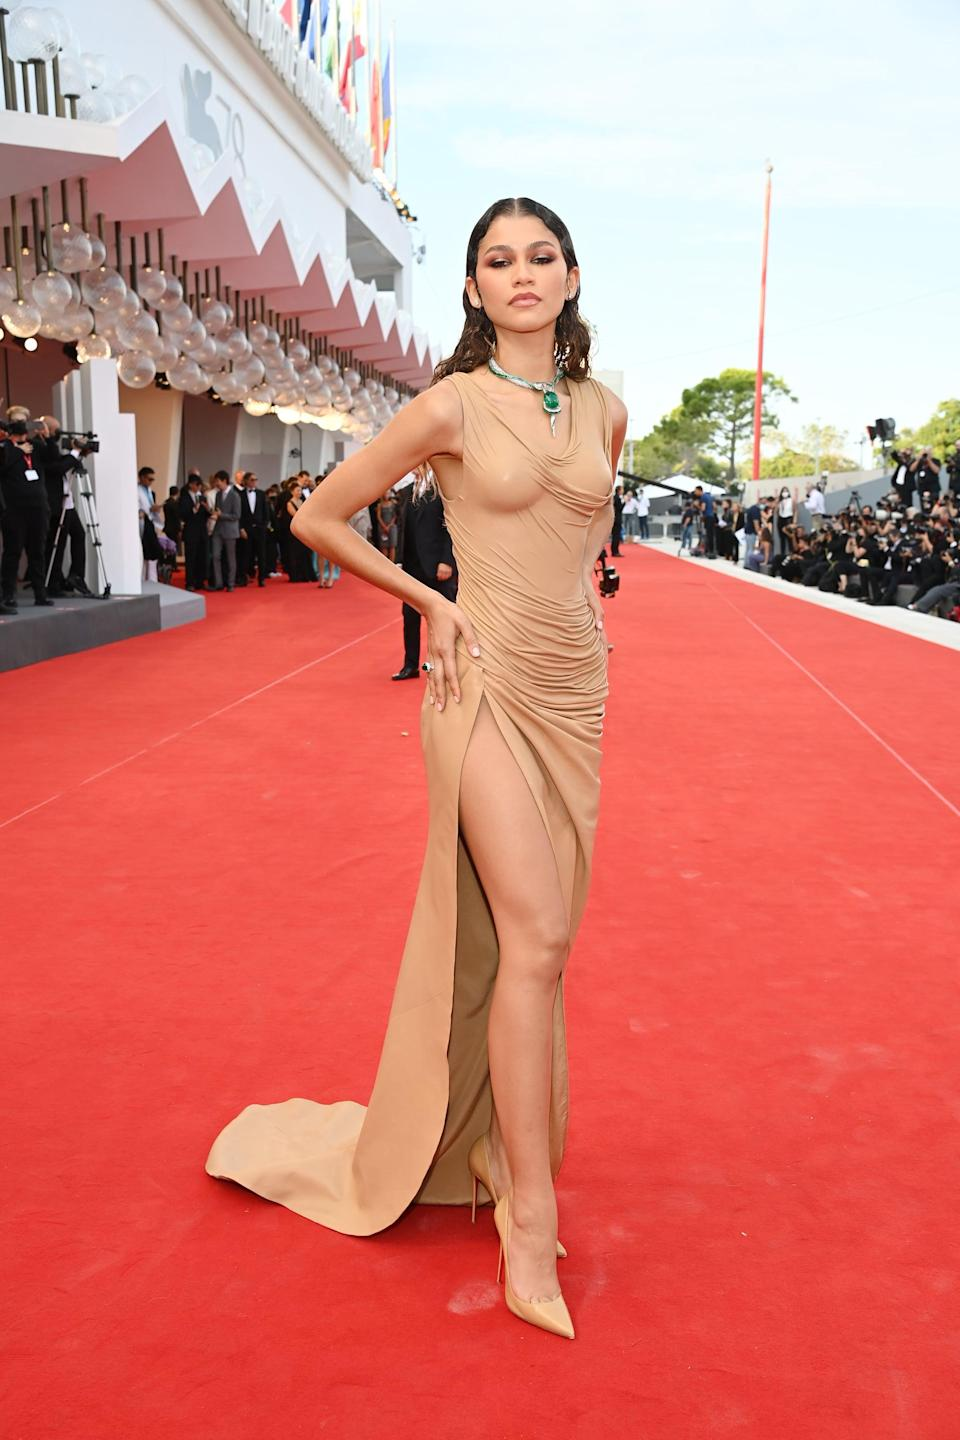 """<p>I always brace for <a class=""""link rapid-noclick-resp"""" href=""""https://www.popsugar.com/Zendaya"""" rel=""""nofollow noopener"""" target=""""_blank"""" data-ylk=""""slk:Zendaya"""">Zendaya</a>'s head-turning look at whatever fancy event she attends. This wet-looking Balmain leather gown stole the show at the Venice Film Festival, and I wasn't expecting anything less from the actress.</p>"""